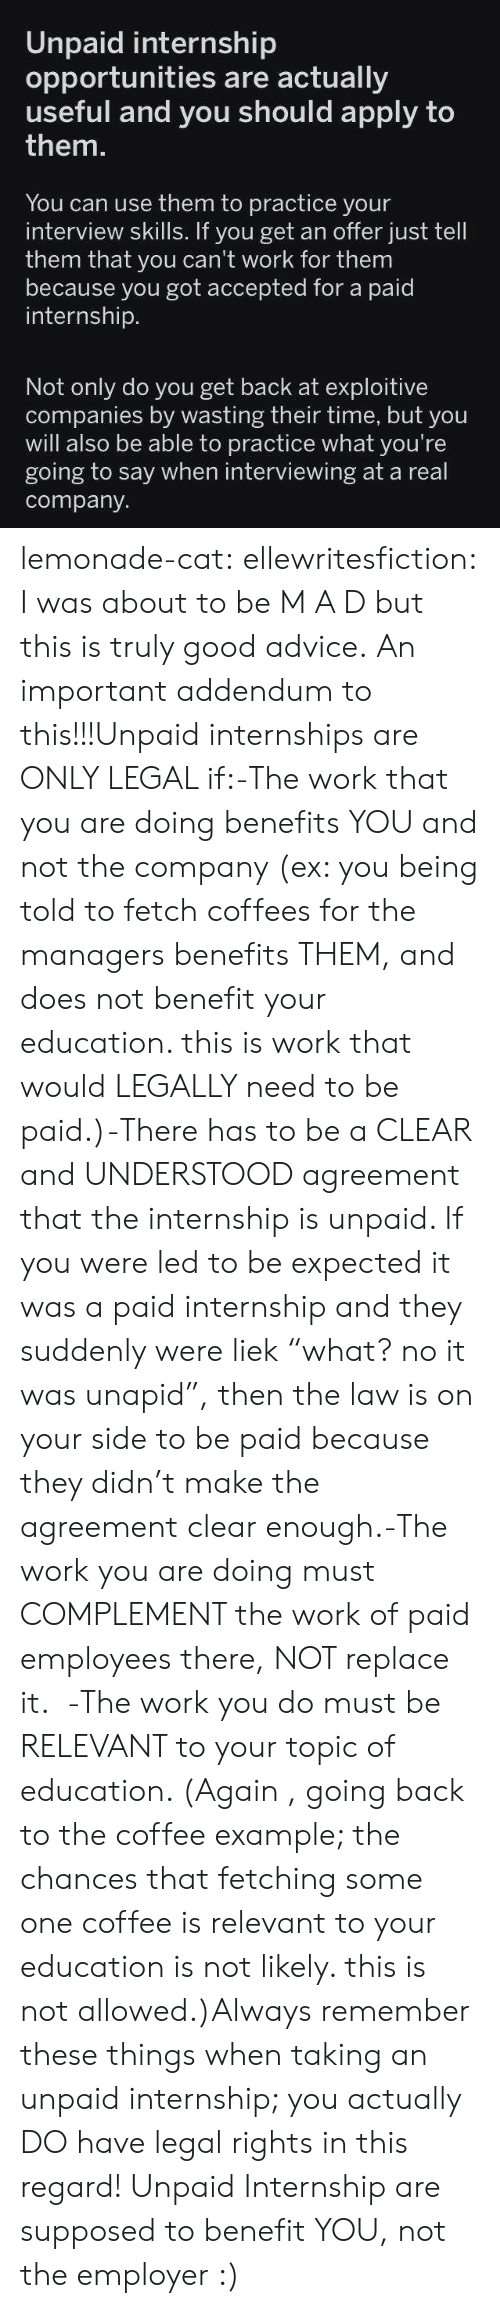 "Liek: Unpaid internship  opportunities are actually  useful ply to  them.  and you should ap  You can use them to practice your  interview skills. If you get an offer just tell  them that you can't work for them  because you got accepted for a paid  internship.  Not only do you get back at exploitive  companies by wasting their time, but you  will also be able to practice what you're  going to say when interviewing at a real  company lemonade-cat: ellewritesfiction: I was about to be M A D but this is truly good advice. An important addendum to this!!!Unpaid internships are ONLY LEGAL if:-The work that you are doing benefits YOU and not the company (ex: you being told to fetch coffees for the managers benefits THEM, and does not benefit your education. this is work that would LEGALLY need to be paid.)-There has to be a CLEAR and UNDERSTOOD agreement that the internship is unpaid. If you were led to be expected it was a paid internship and they suddenly were liek ""what? no it was unapid"", then the law is on your side to be paid because they didn't make the agreement clear enough.-The work you are doing must COMPLEMENT the work of paid employees there, NOT replace it.  -The work you do must be RELEVANT to your topic of education. (Again , going back to the coffee example; the chances that fetching some one coffee is relevant to your education is not likely. this is not allowed.)Always remember these things when taking an unpaid internship; you actually DO have legal rights in this regard! Unpaid Internship are supposed to benefit YOU, not the employer :)"